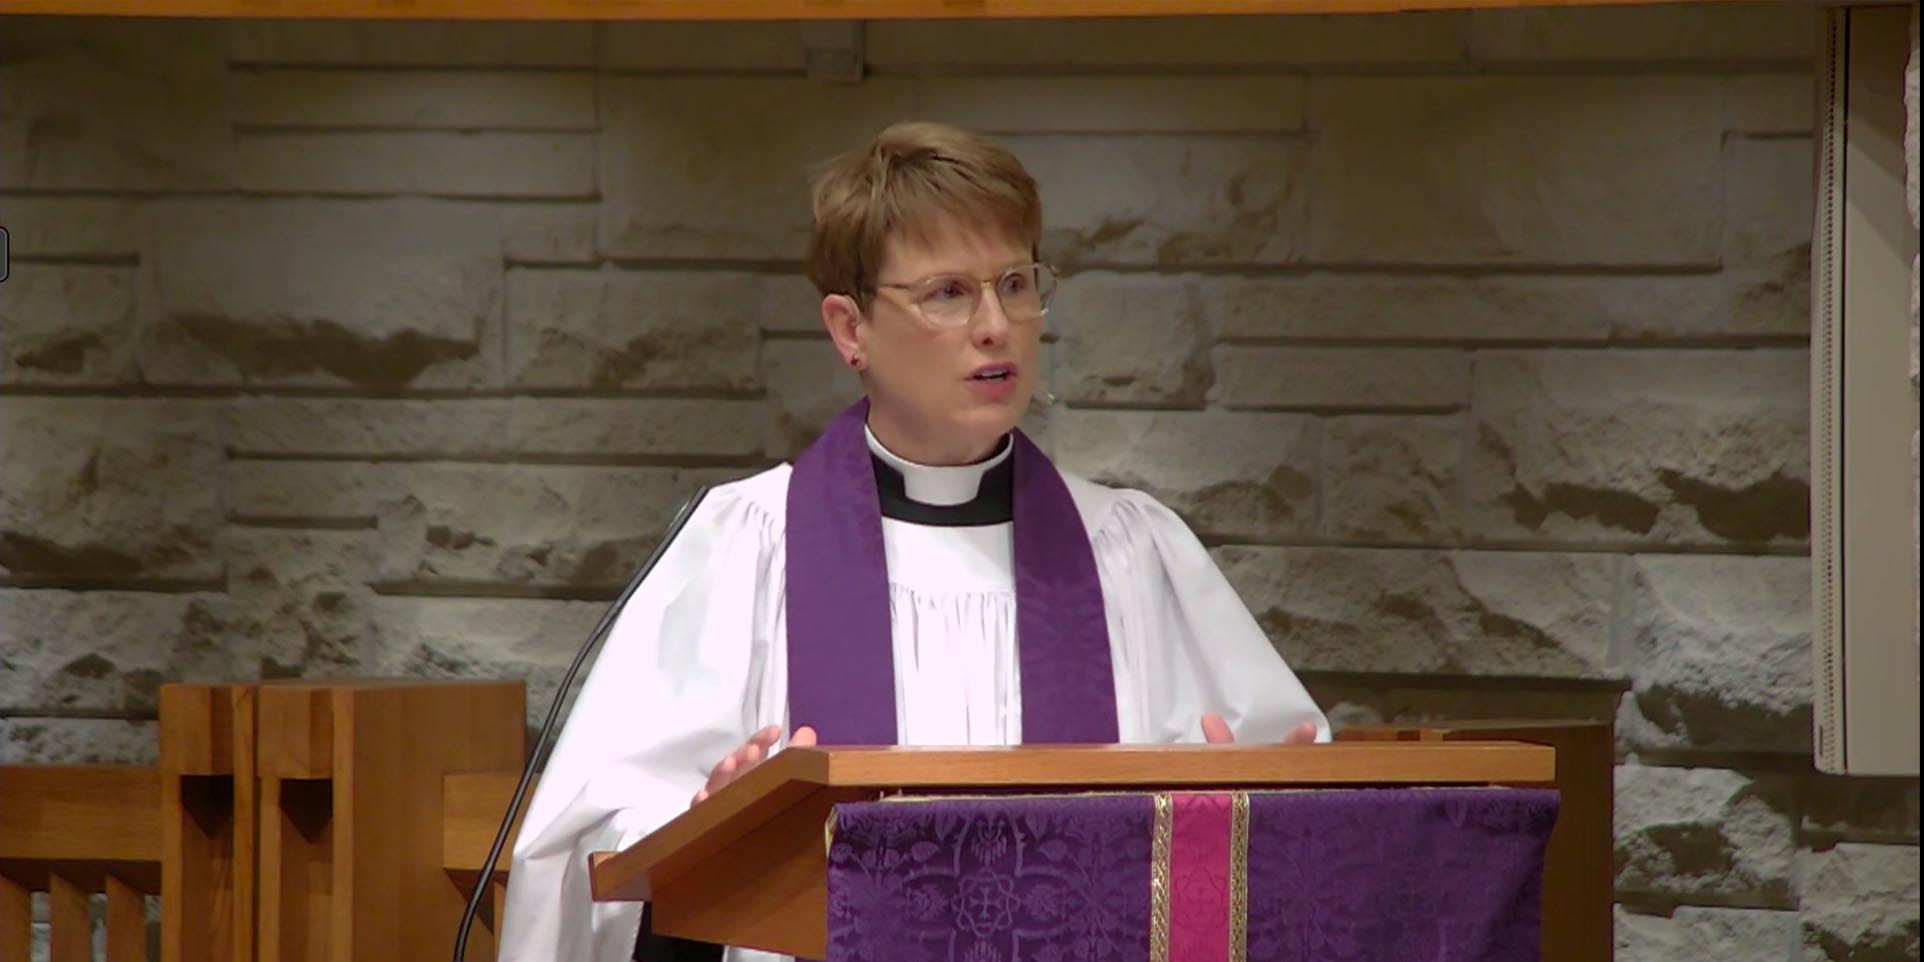 We Don't Know - Sermon by the Rev. Louise Samuelson